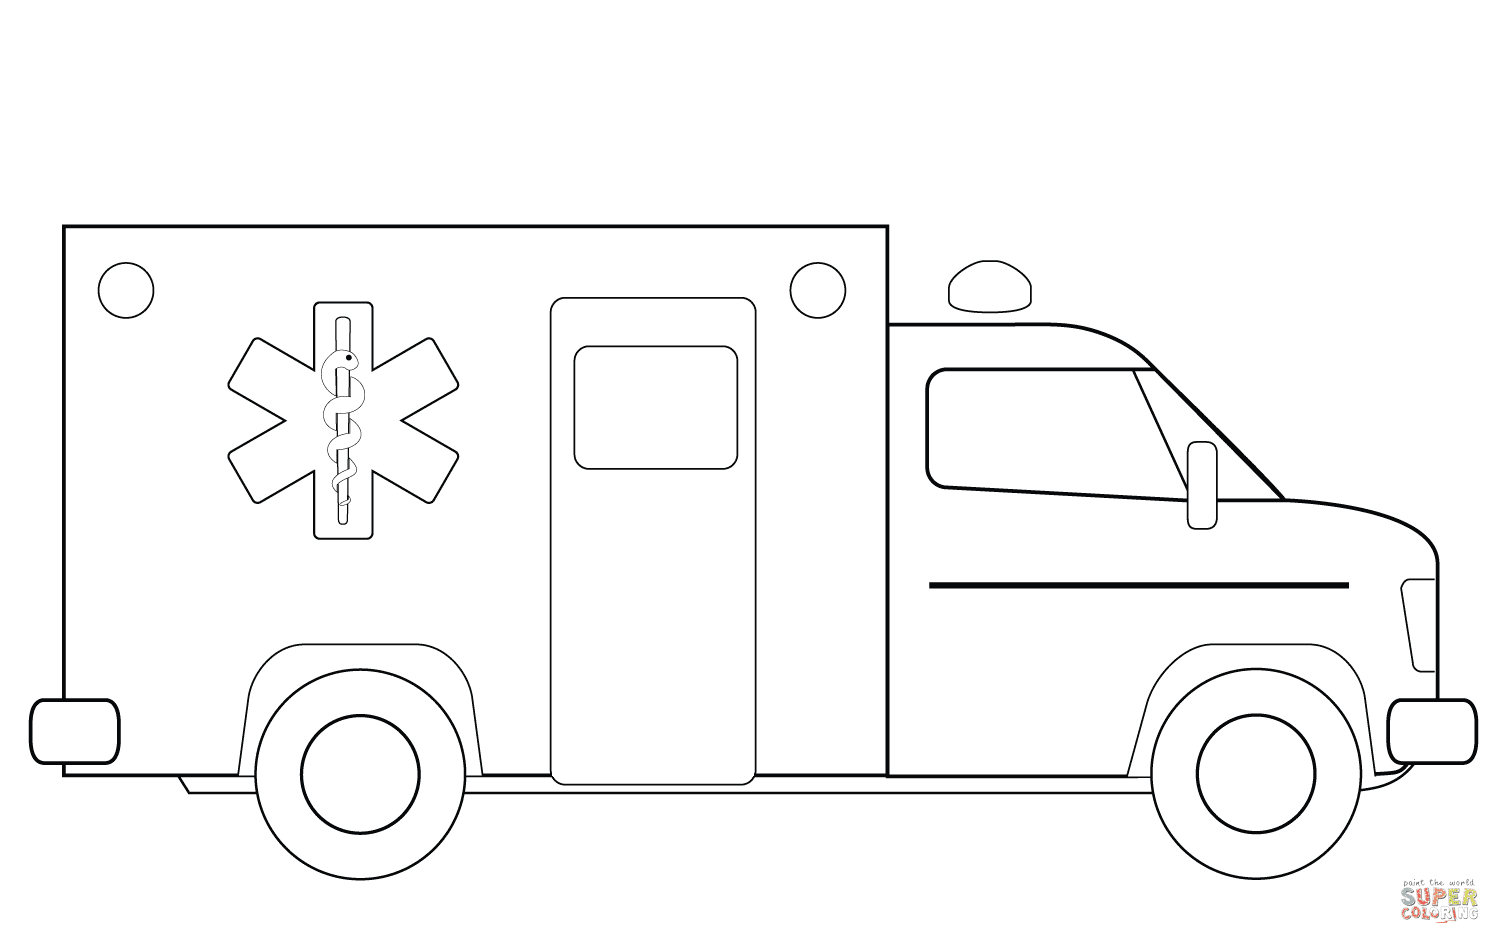 er sur la Camion ambulance coloriages